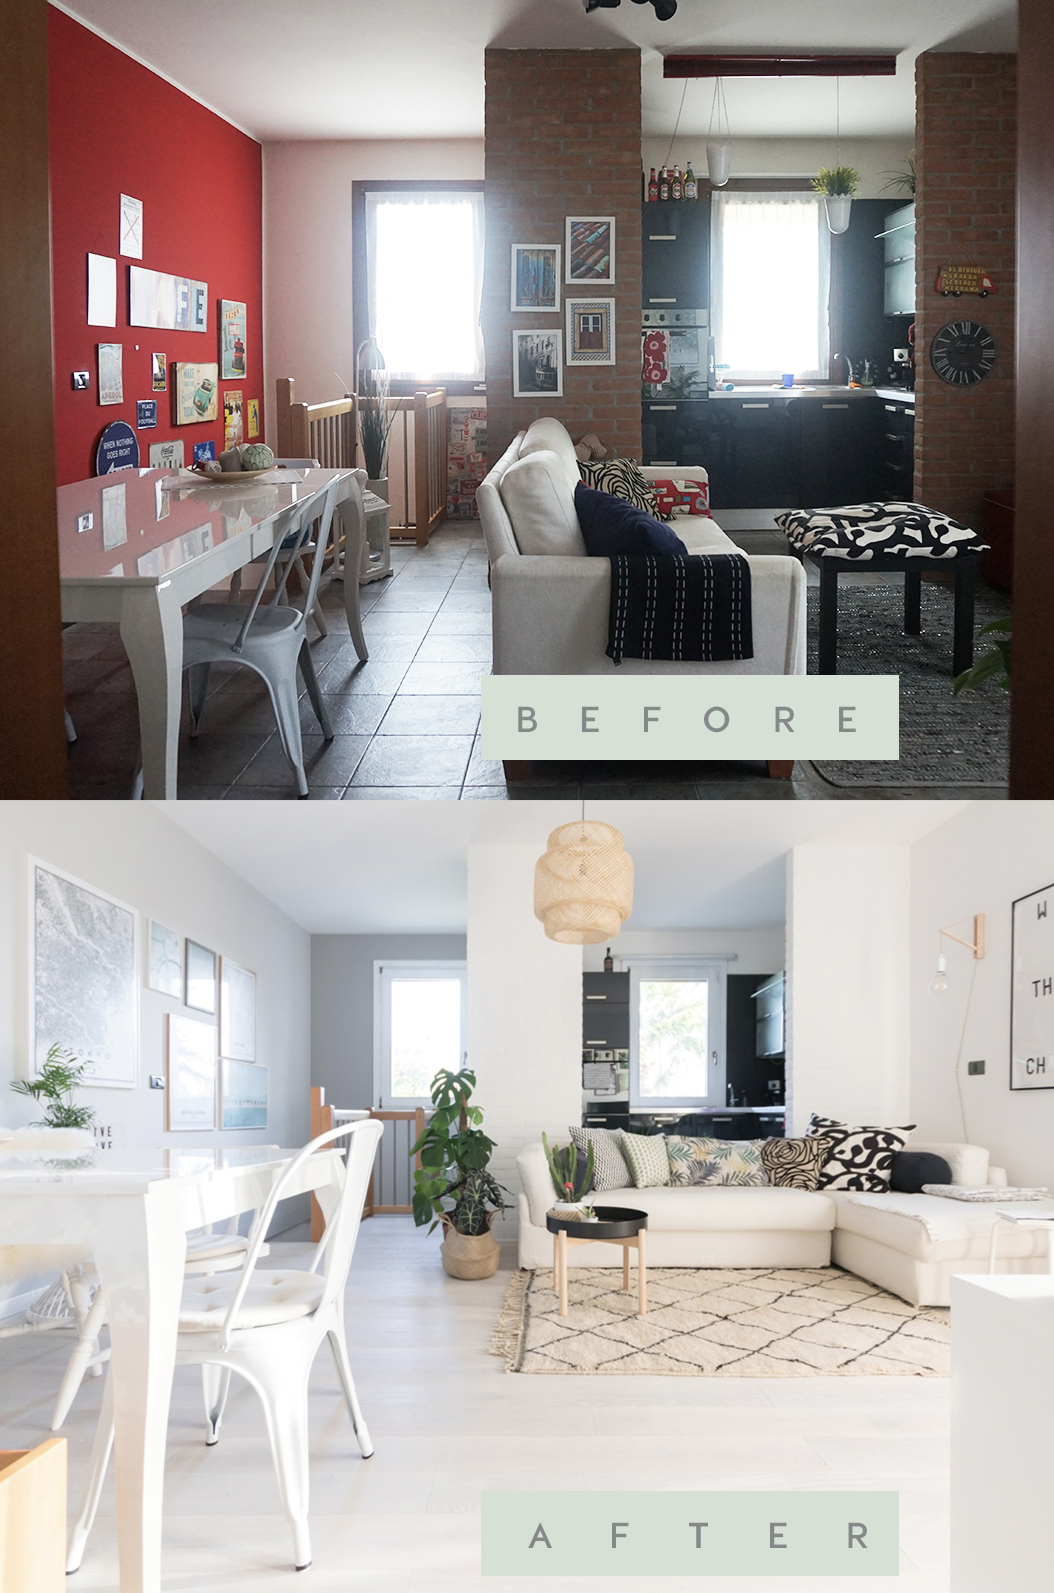 My Living Room Remodel Before and After, a Scandinavian